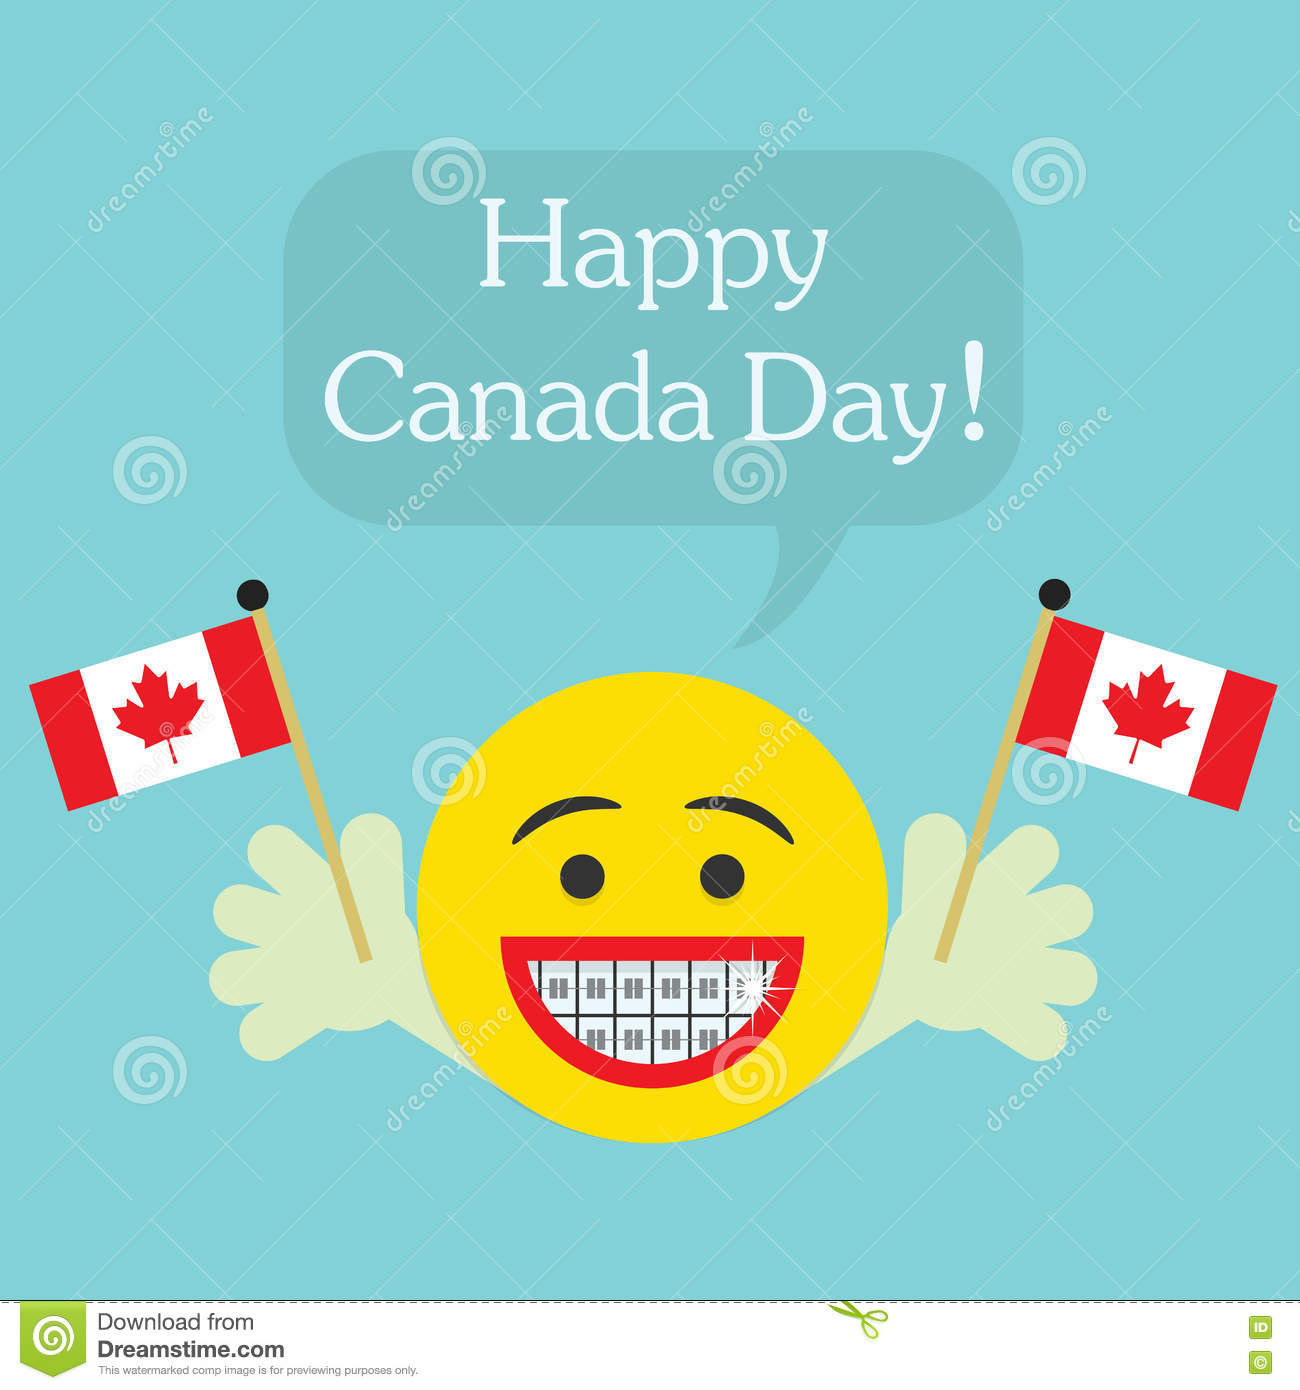 Happy Canada Day! smiley face icon with big smile and orthodontics teeth